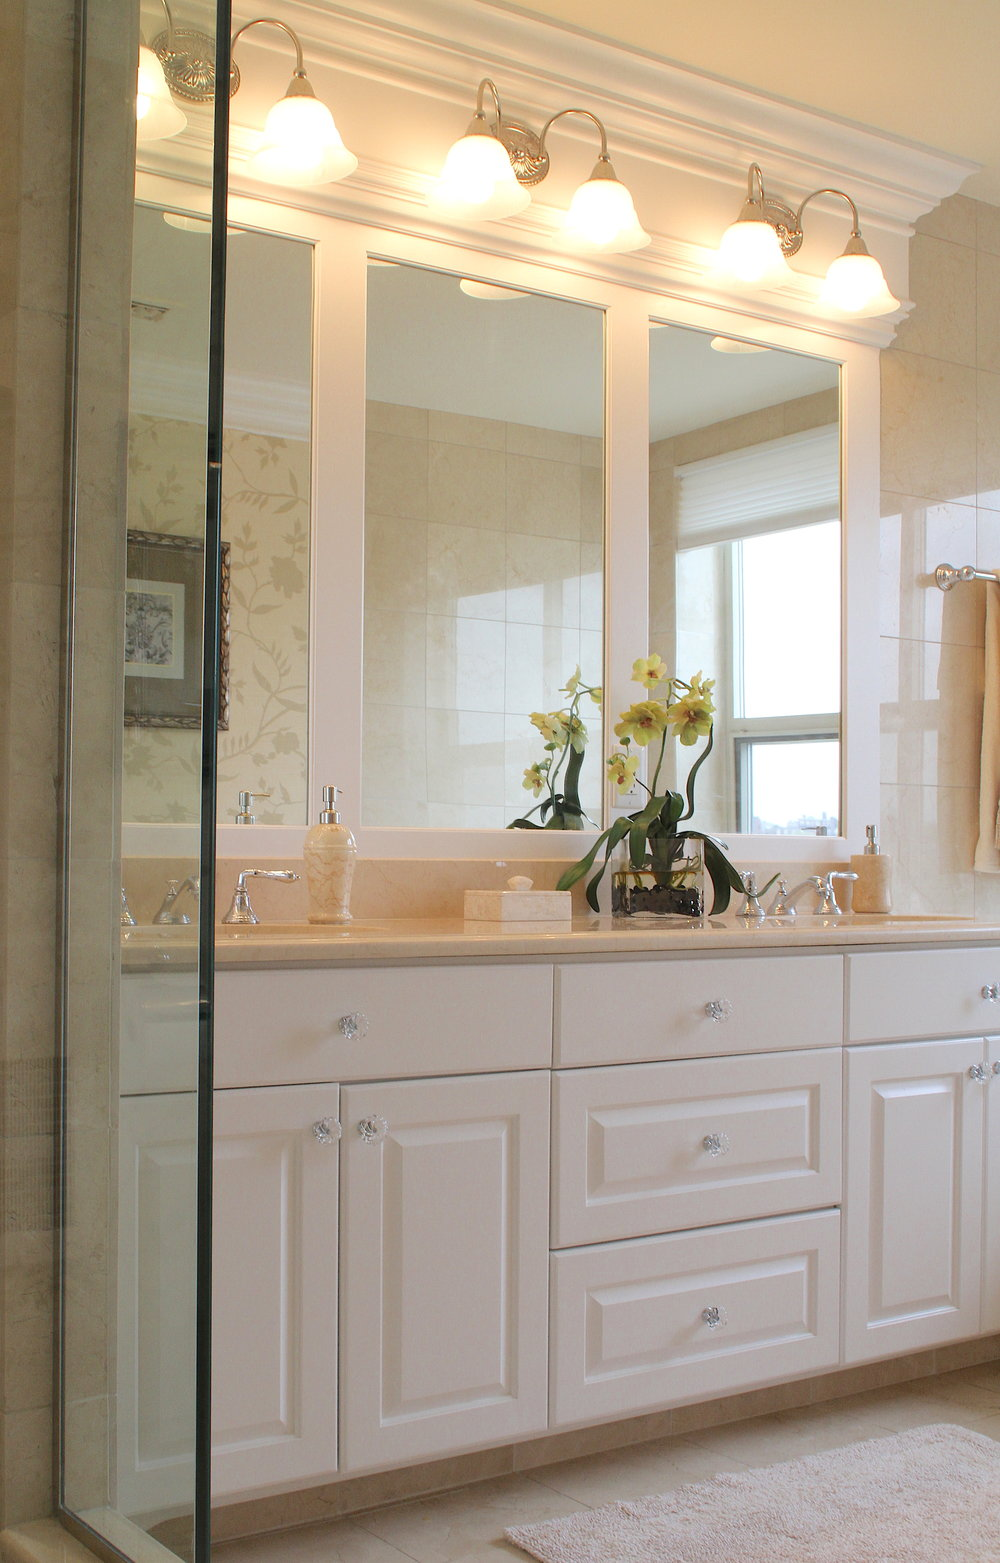 Custom millwork was designed to mount these light fixtures over the mirrors in this master bathroom renovation.